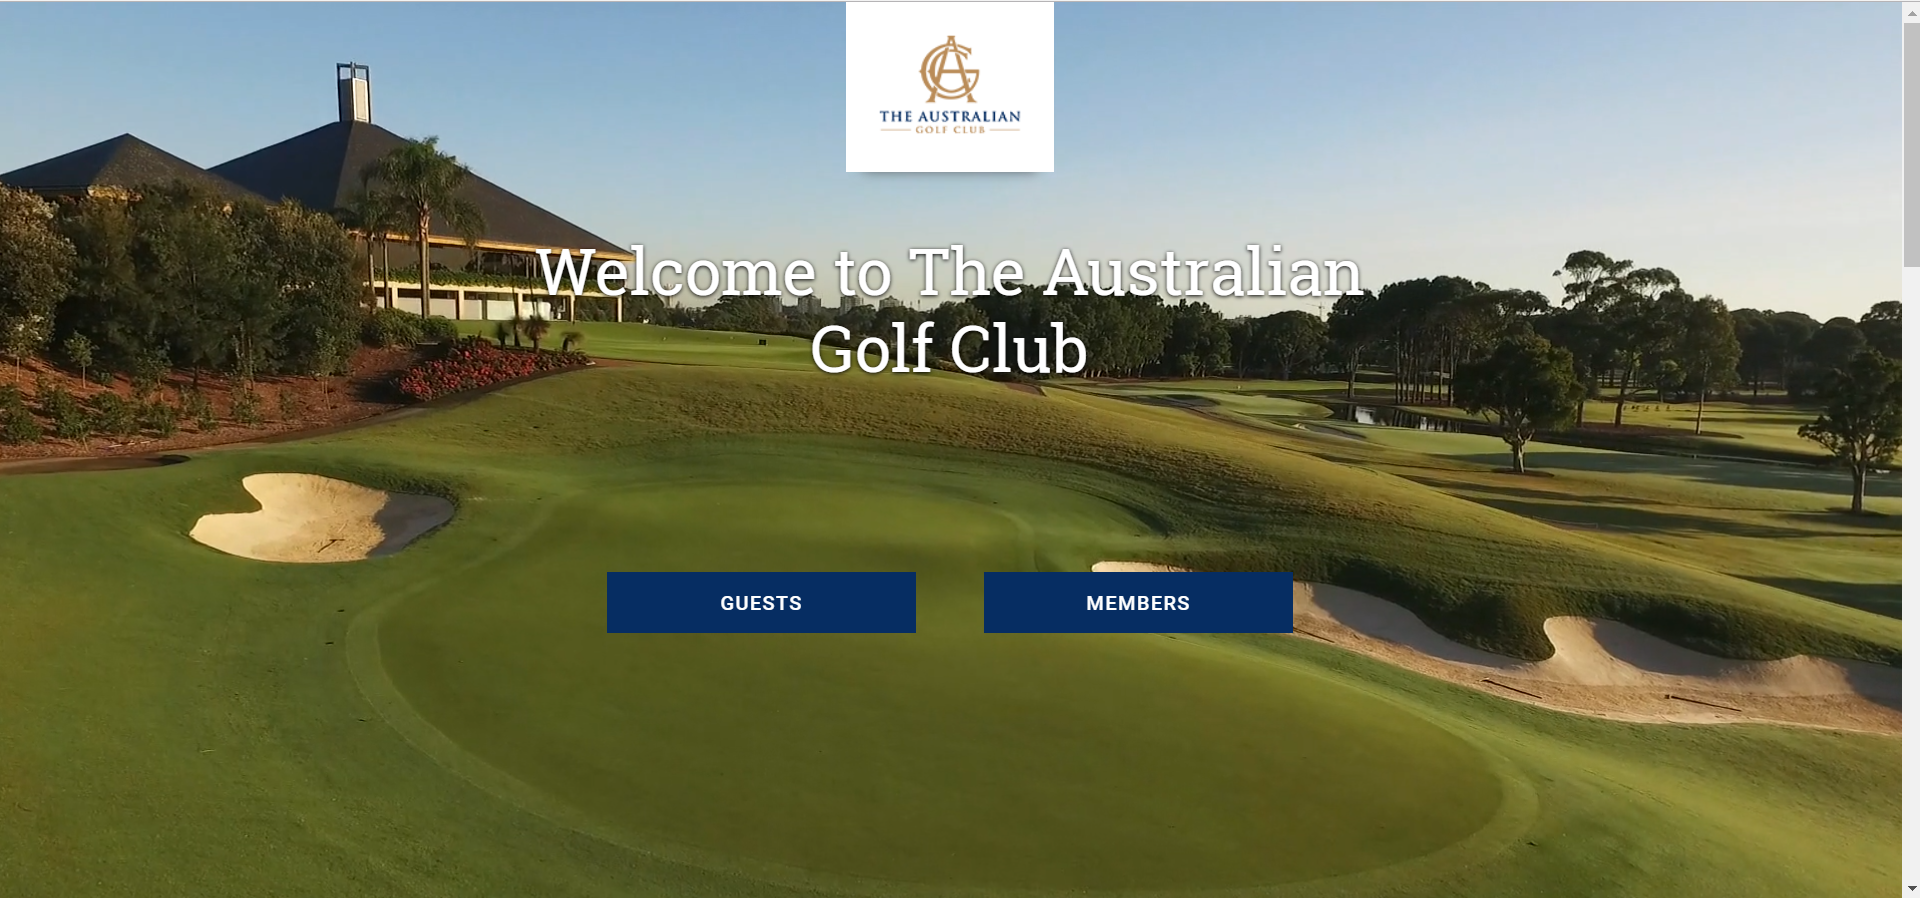 The Australian Golf Club Website